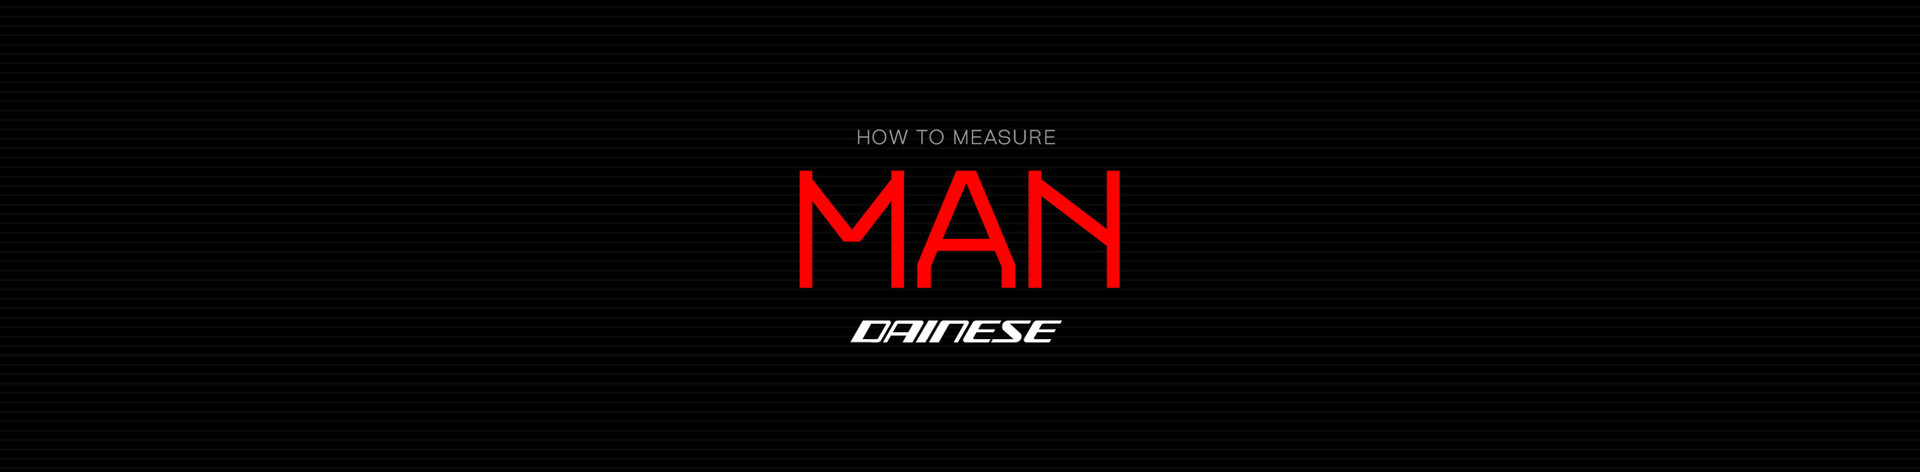 How to measure MAN